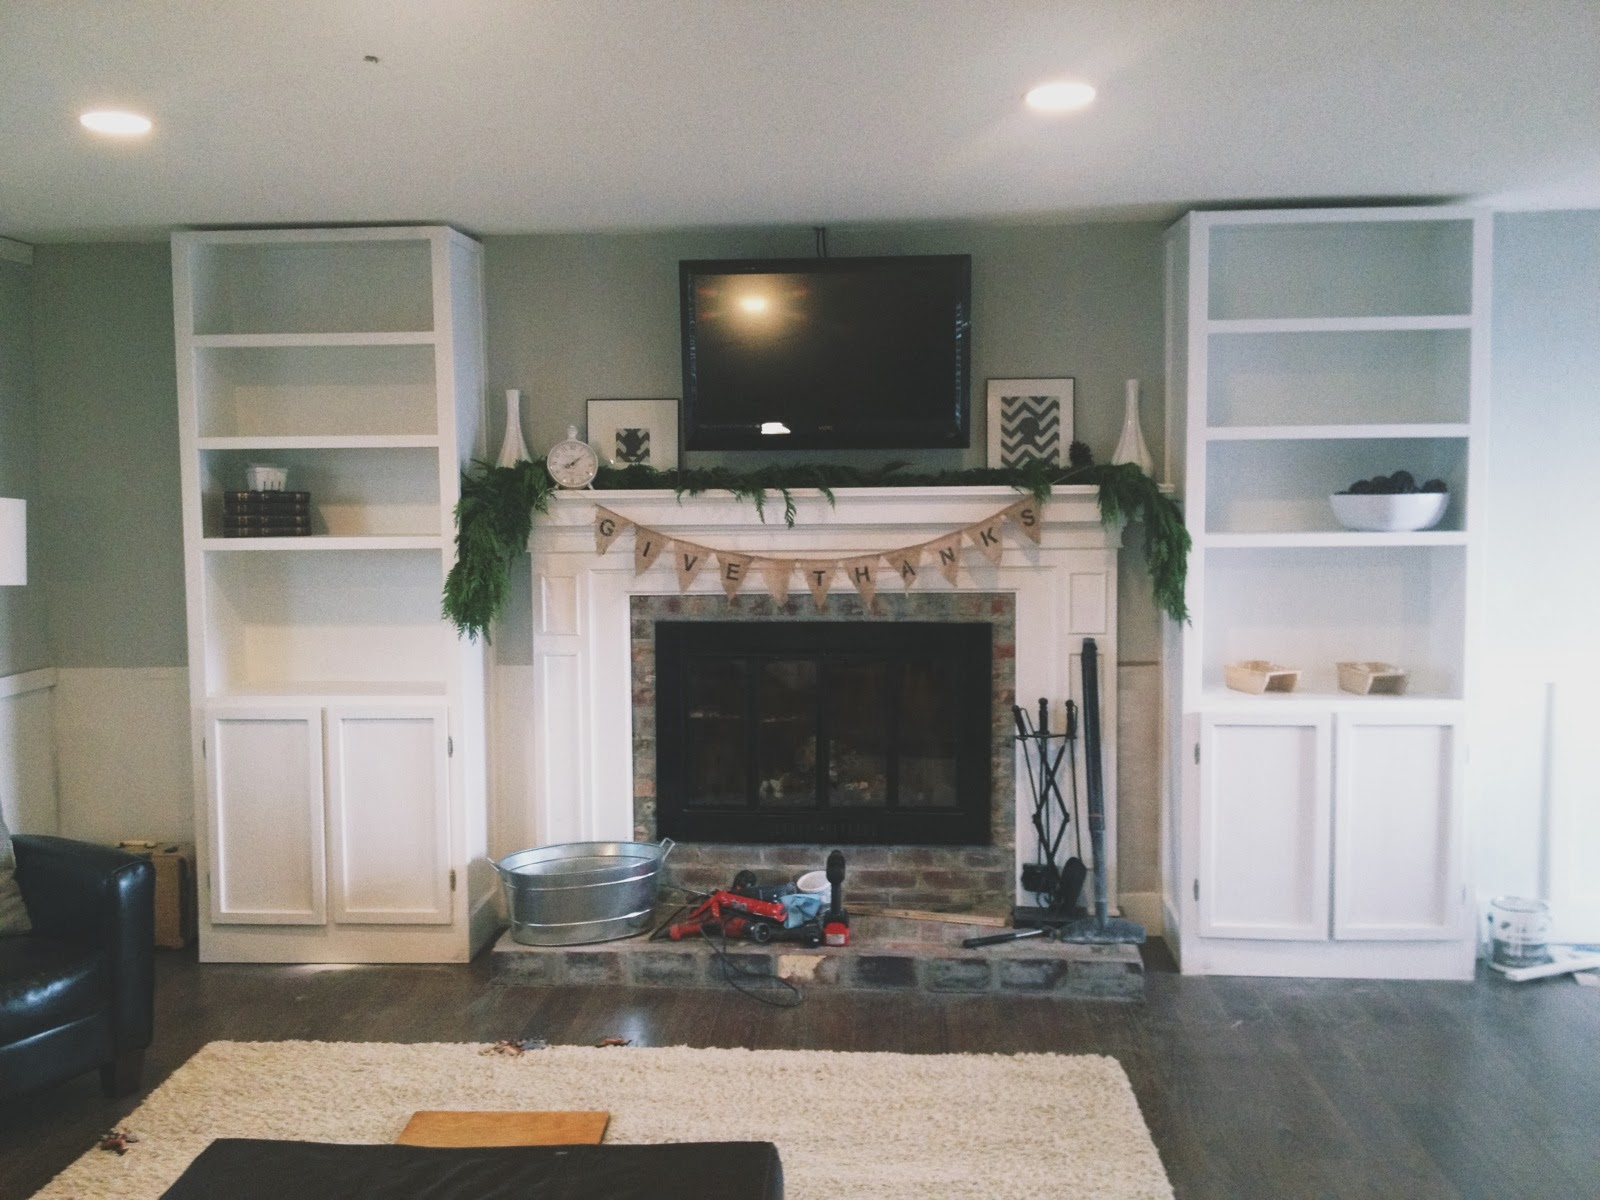 Keep home simple our living room built ins - Living room built ins ...